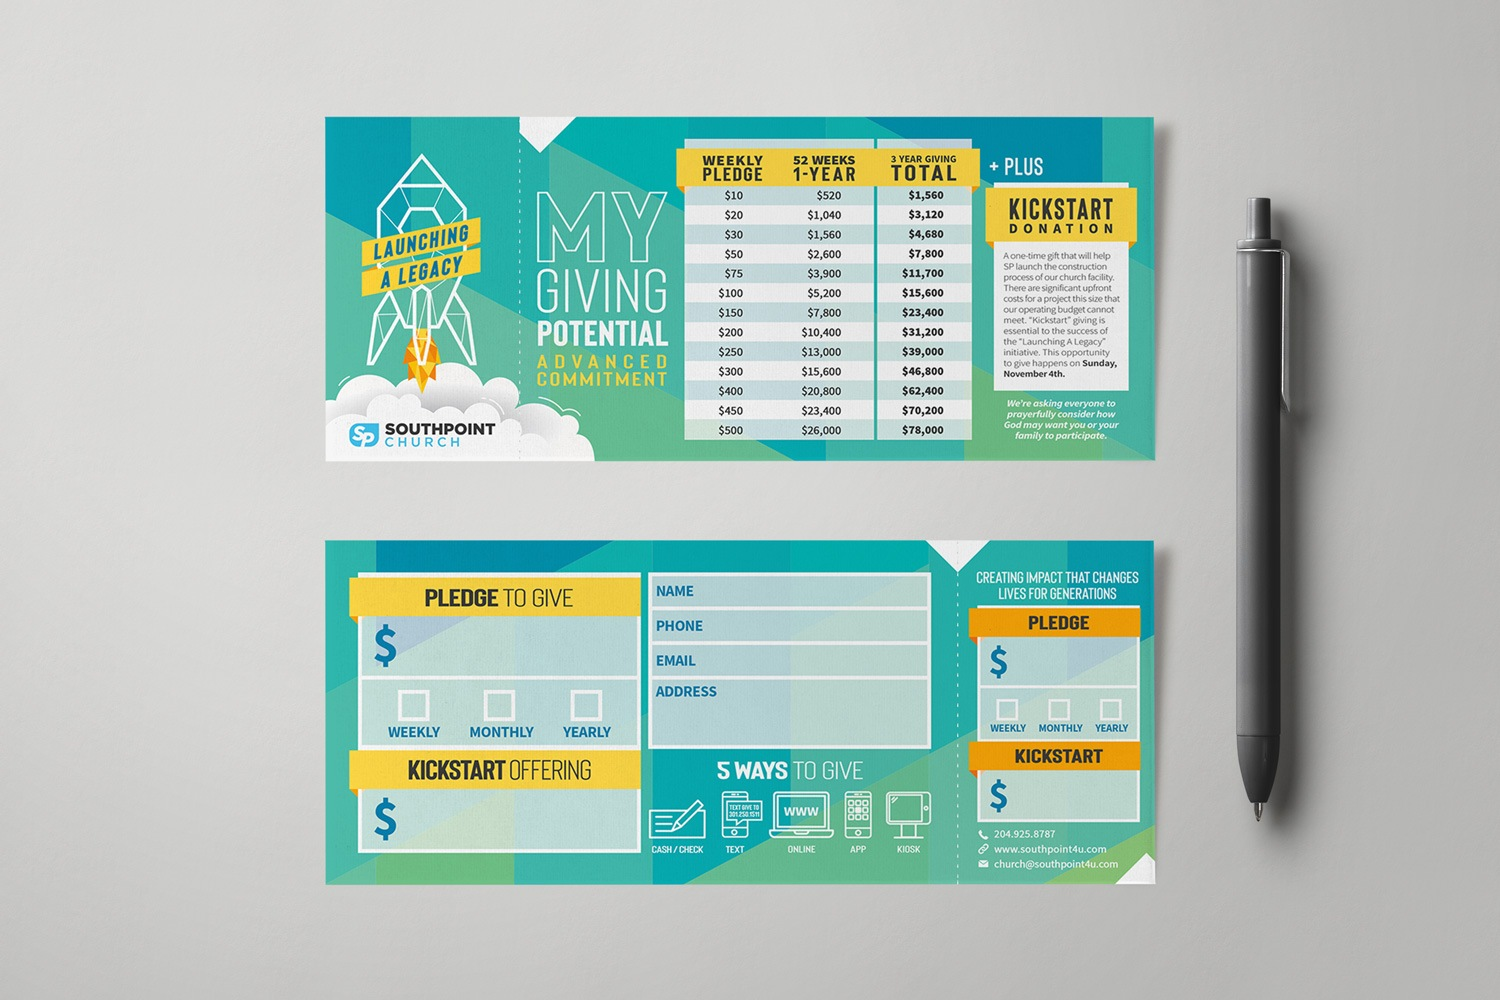 Capital Campaign Pledge Cards Commitment Card Design for Church Examples, Ideas